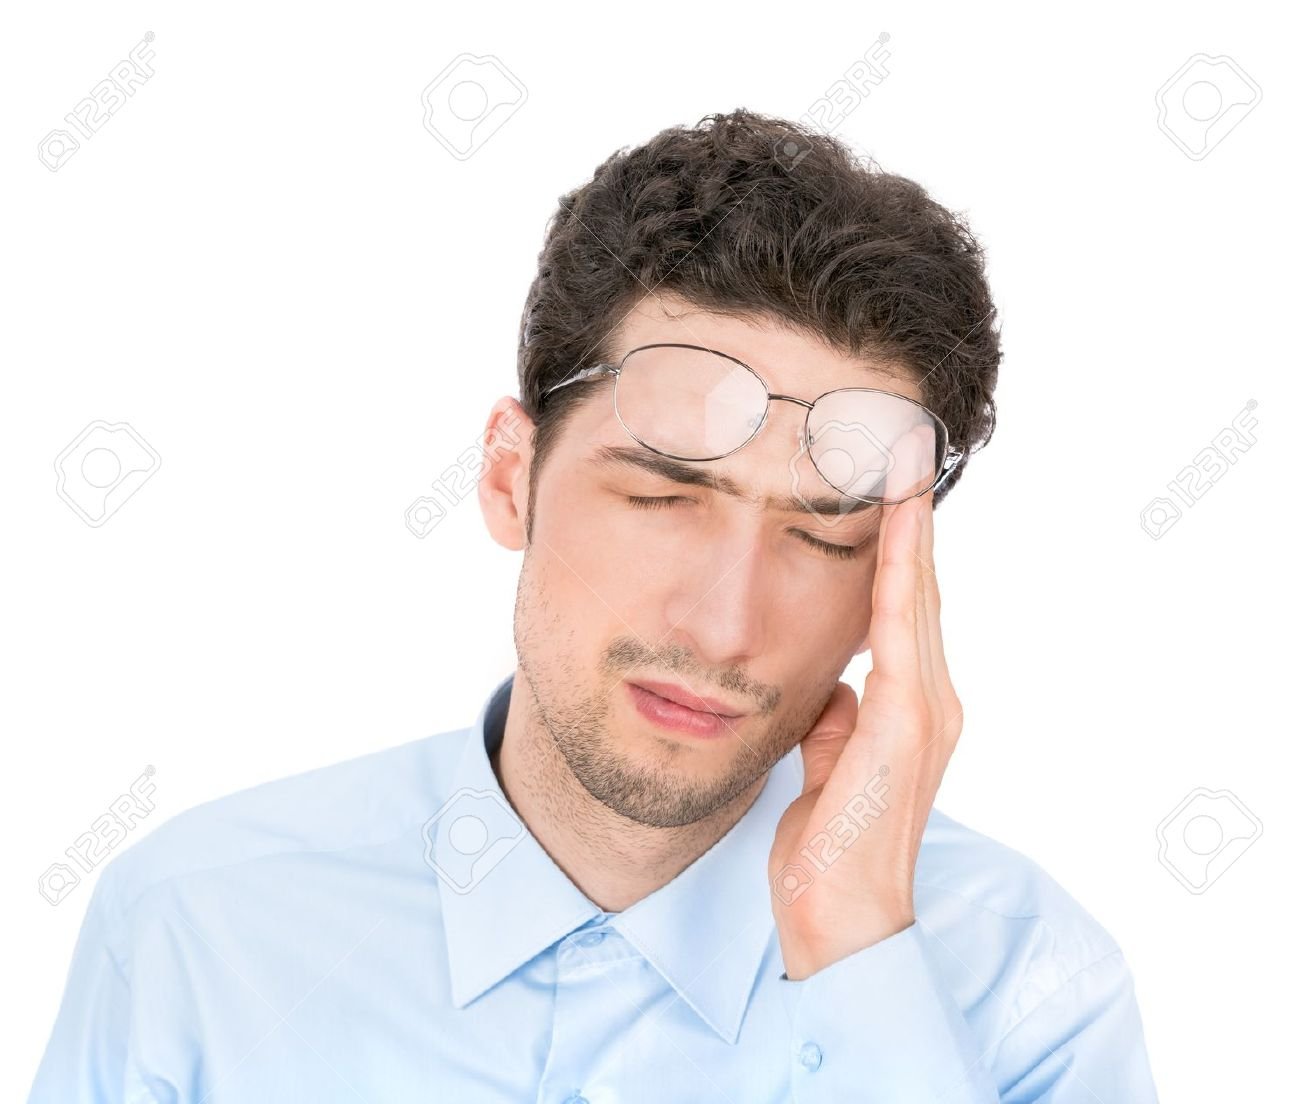 19147748-handsome-young-businessman-suffers-from-a-headache-isolated-on-white-background-stock-photo